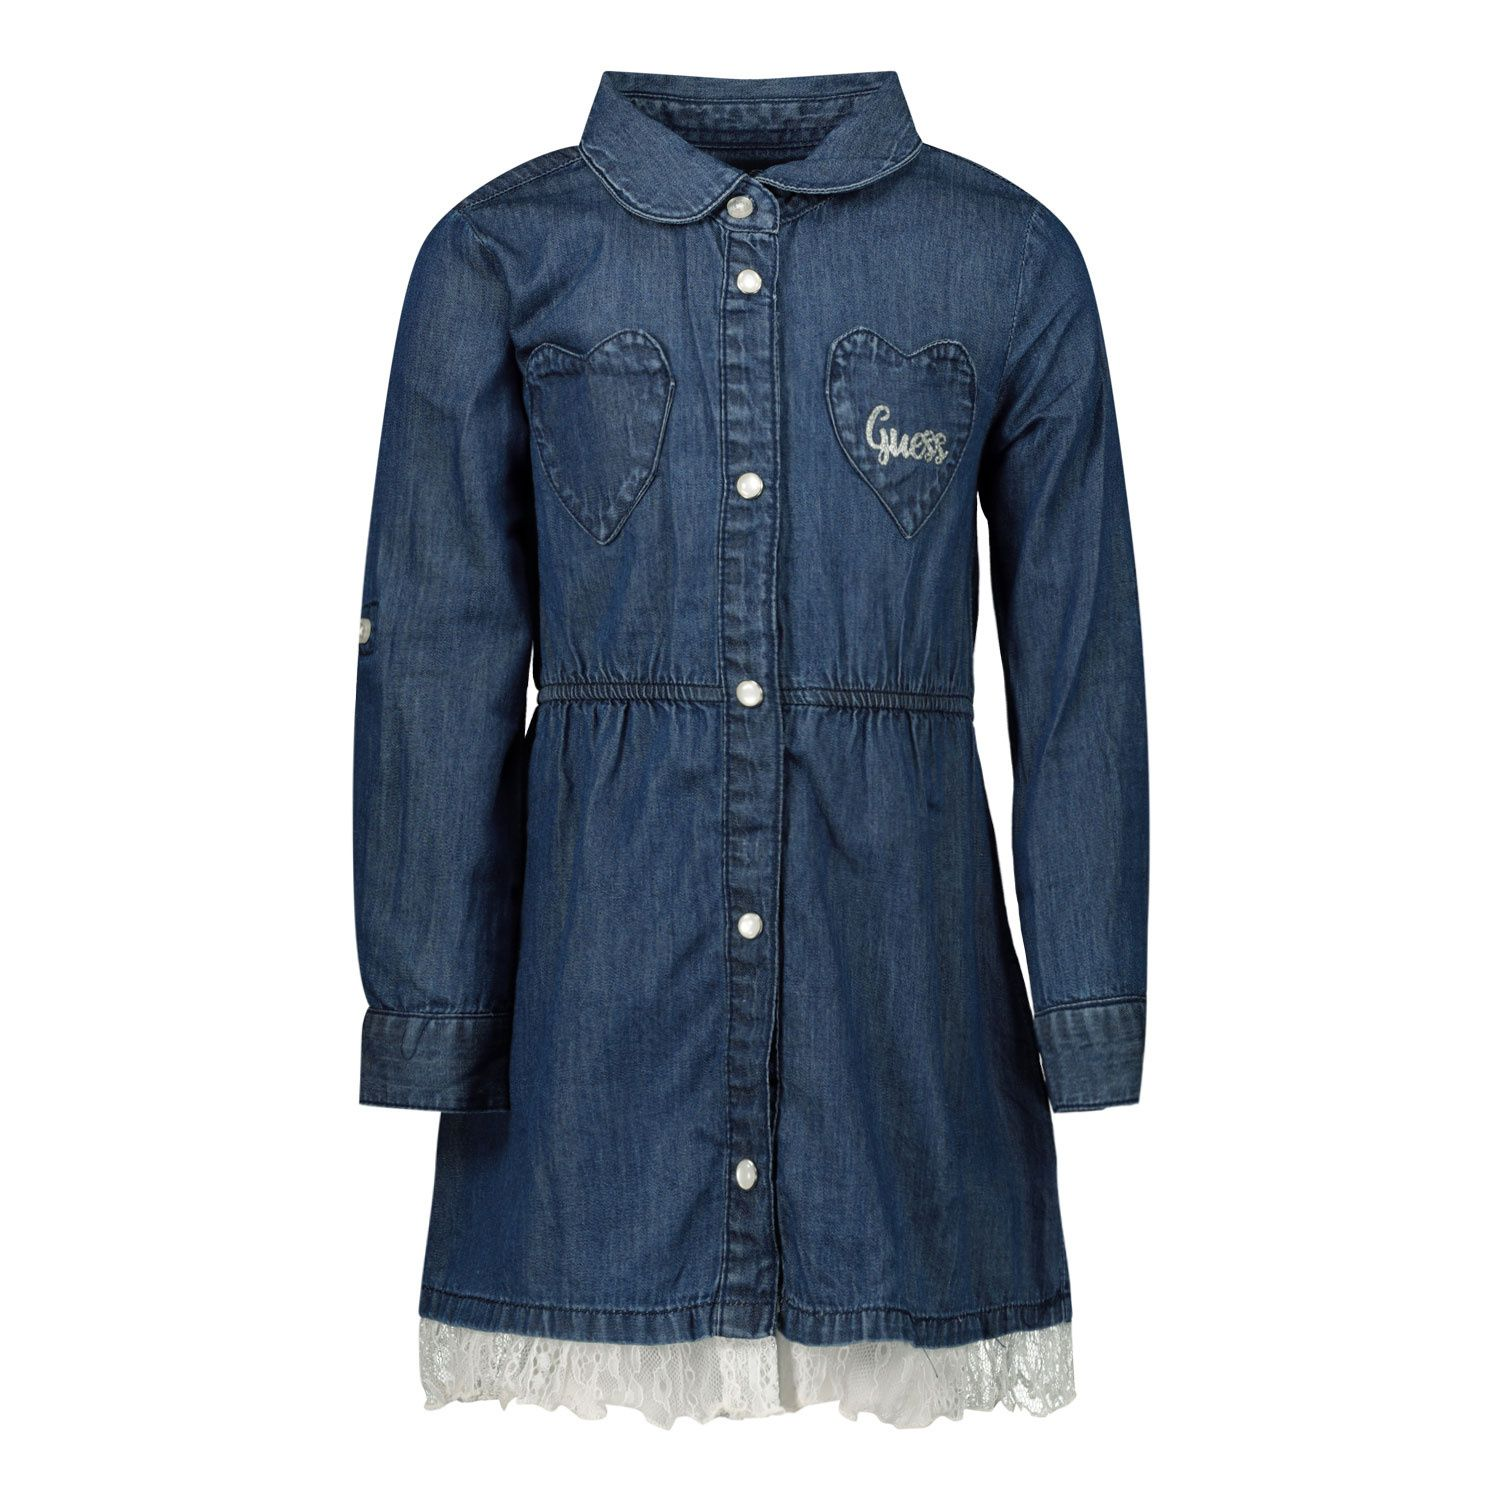 Picture of Guess A0YK08/D3SU0 baby dress jeans